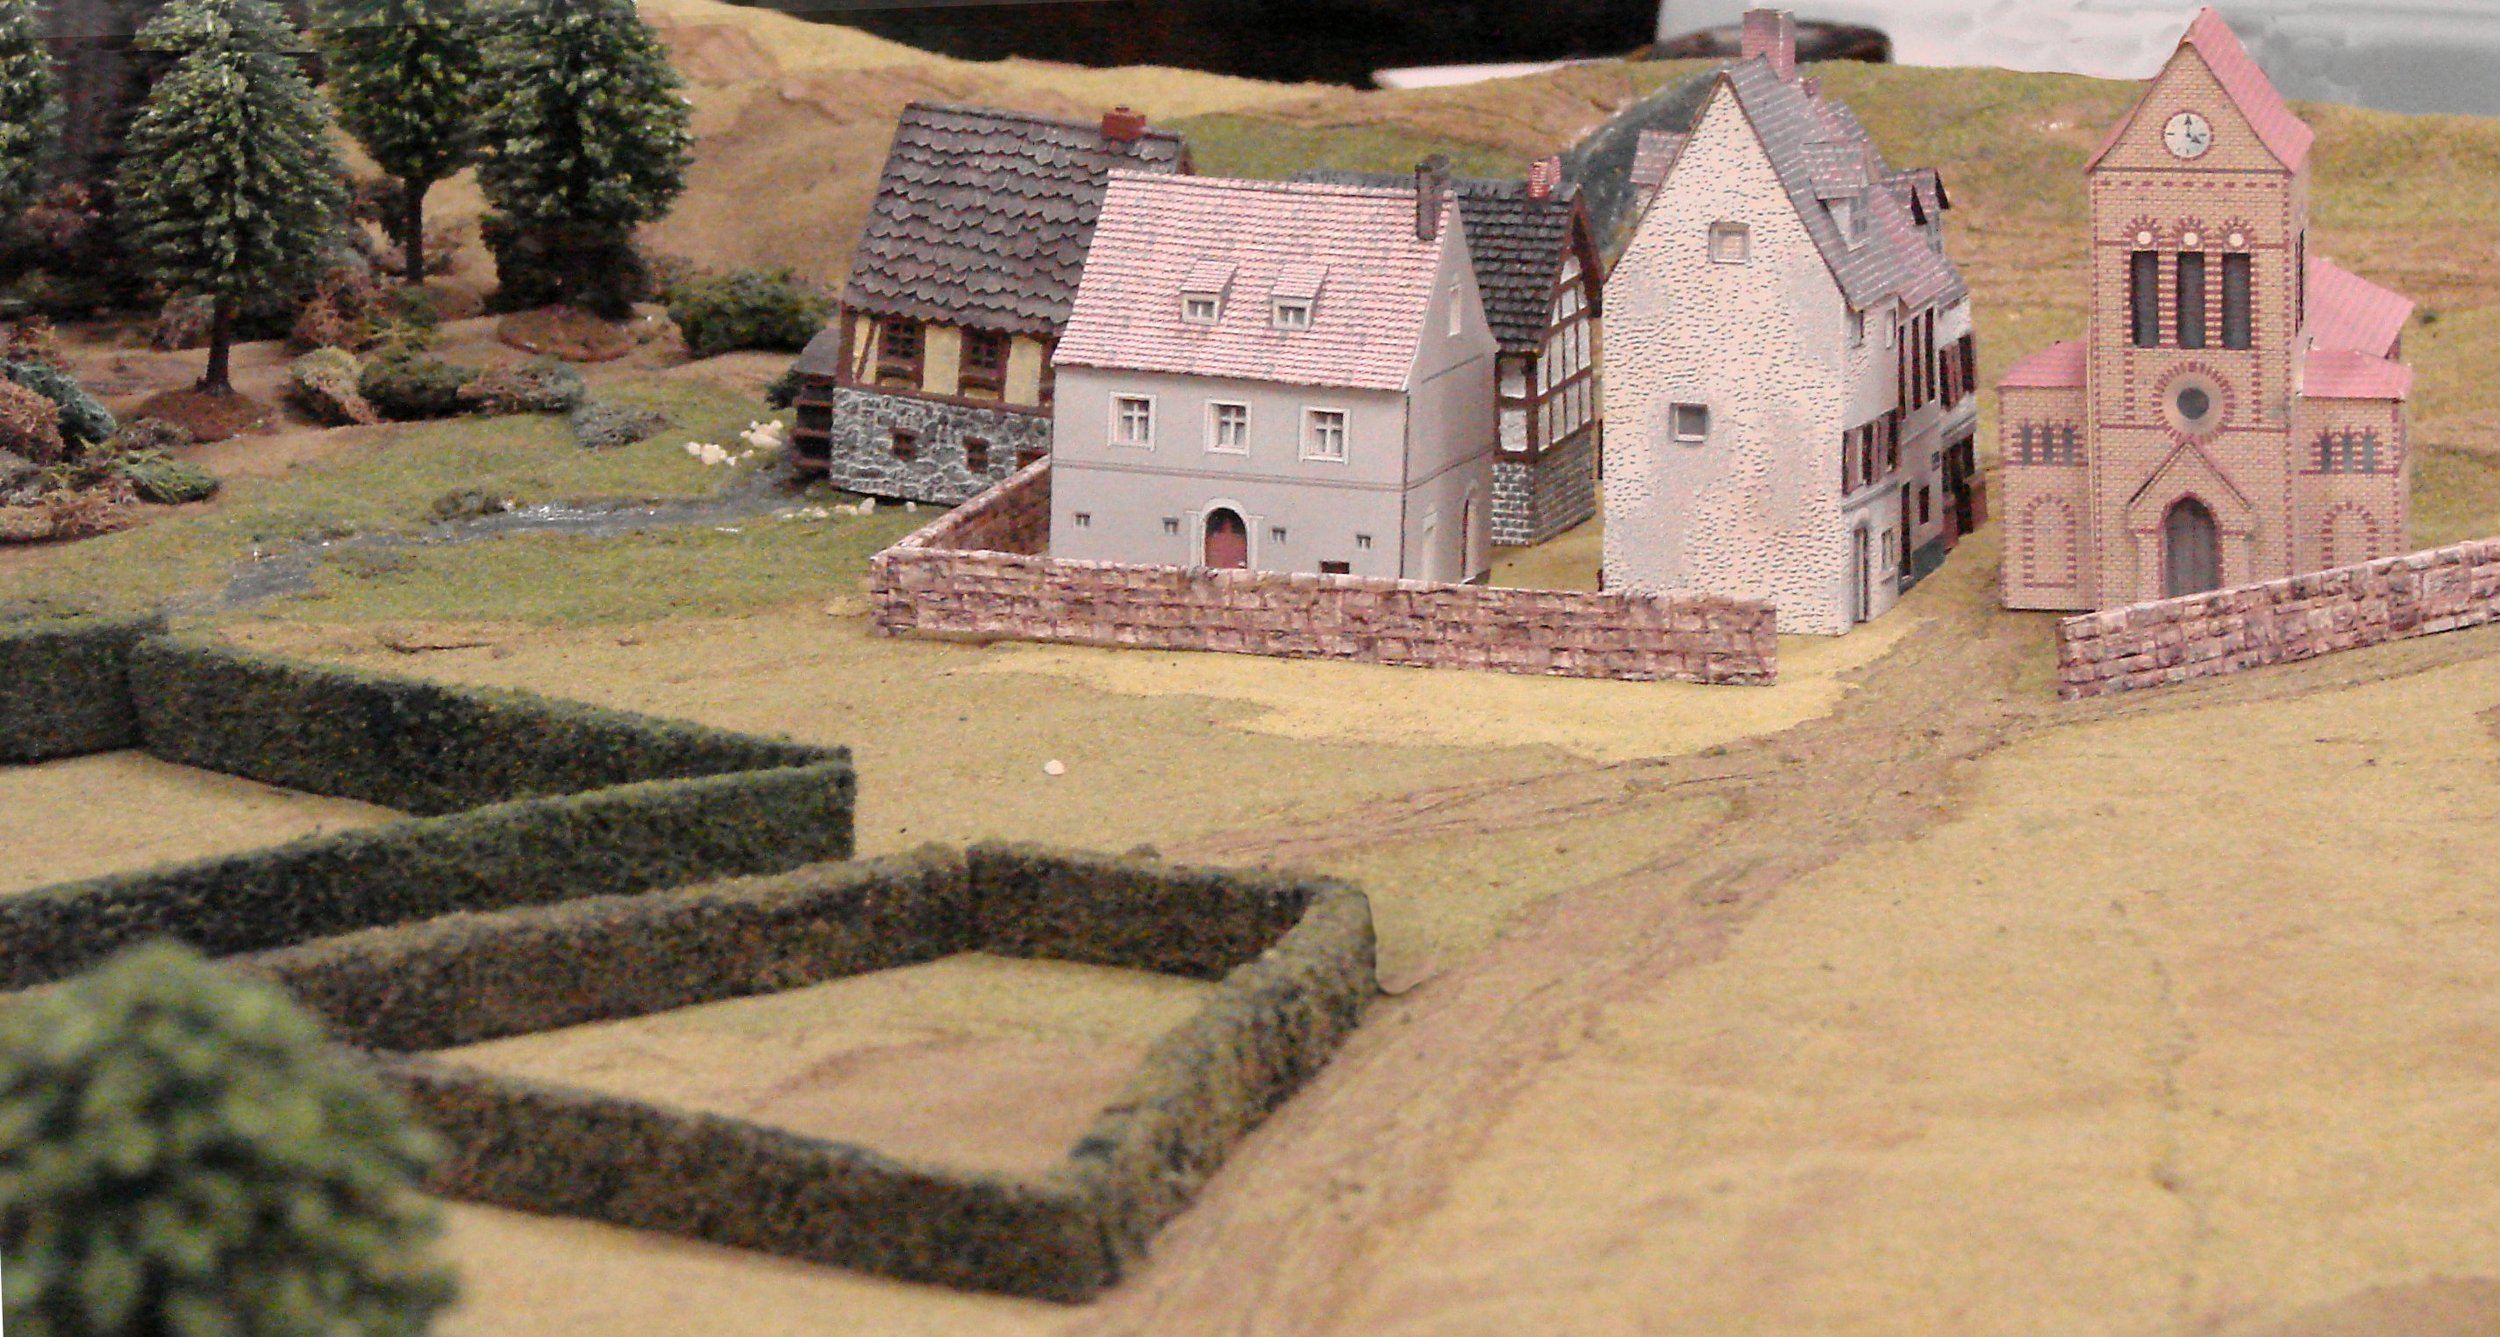 In the rear of the American position, hedged fields provide cover for a fall-back position, and a small village becomes company HQ.